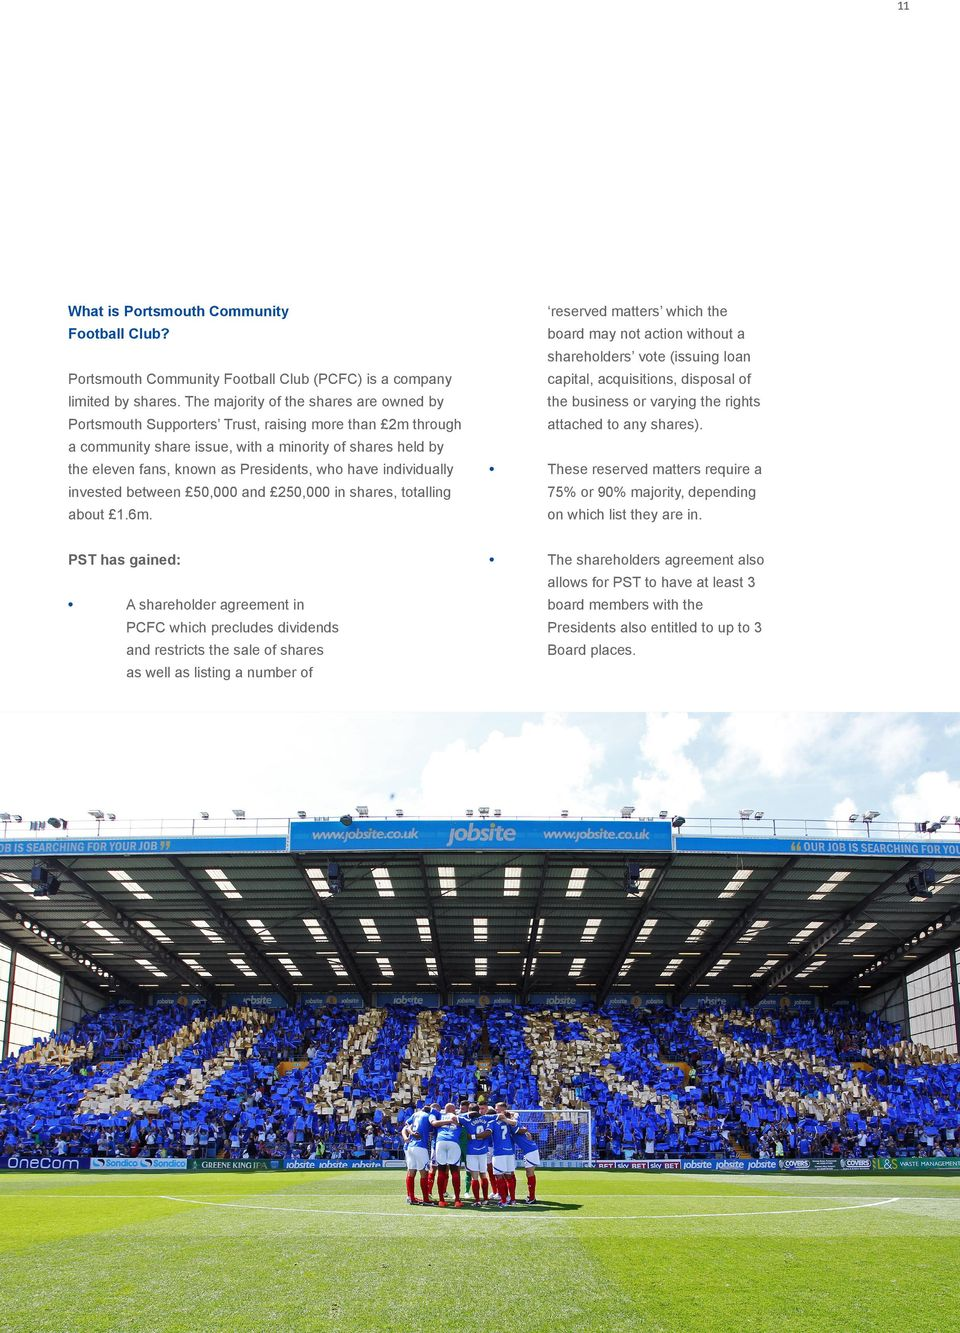 The majority of the shares are owned by the business or varying the rights Portsmouth Supporters Trust, raising more than 2m through attached to any shares).